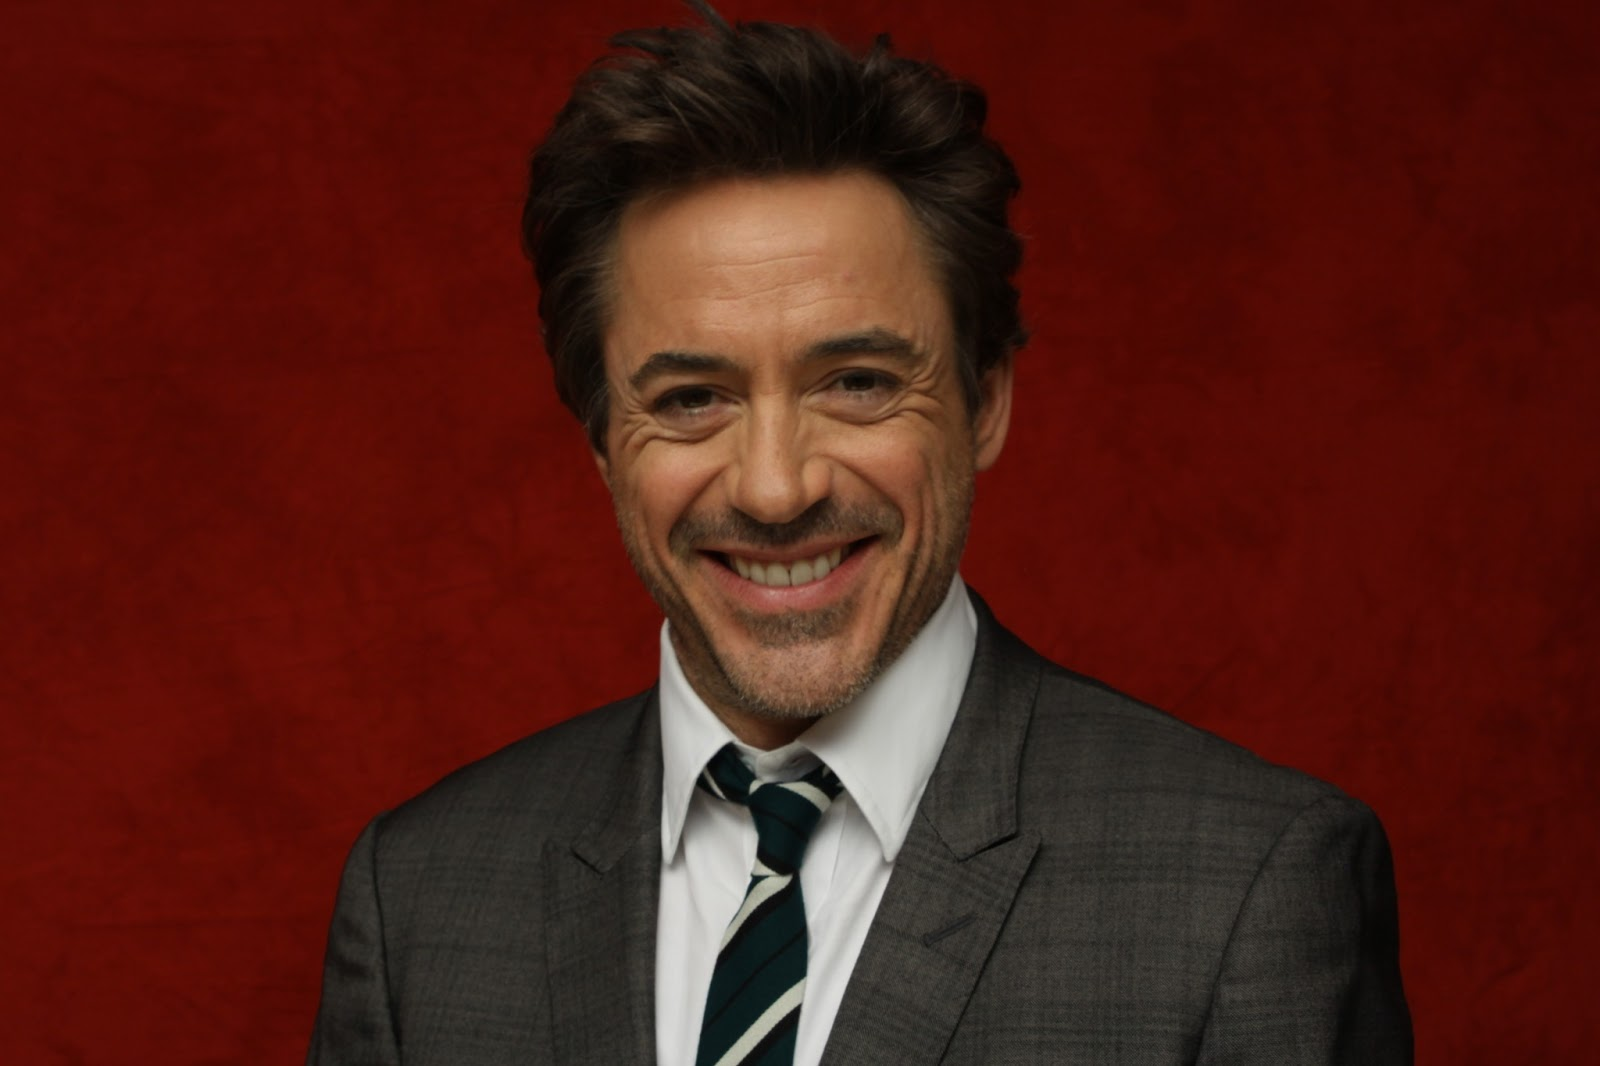 http://2.bp.blogspot.com/-_pht3sP_grQ/UUJW8qYtdrI/AAAAAAAADQU/KM8WM_TO3tc/s1600/Robert-Downey-Jr.jpg